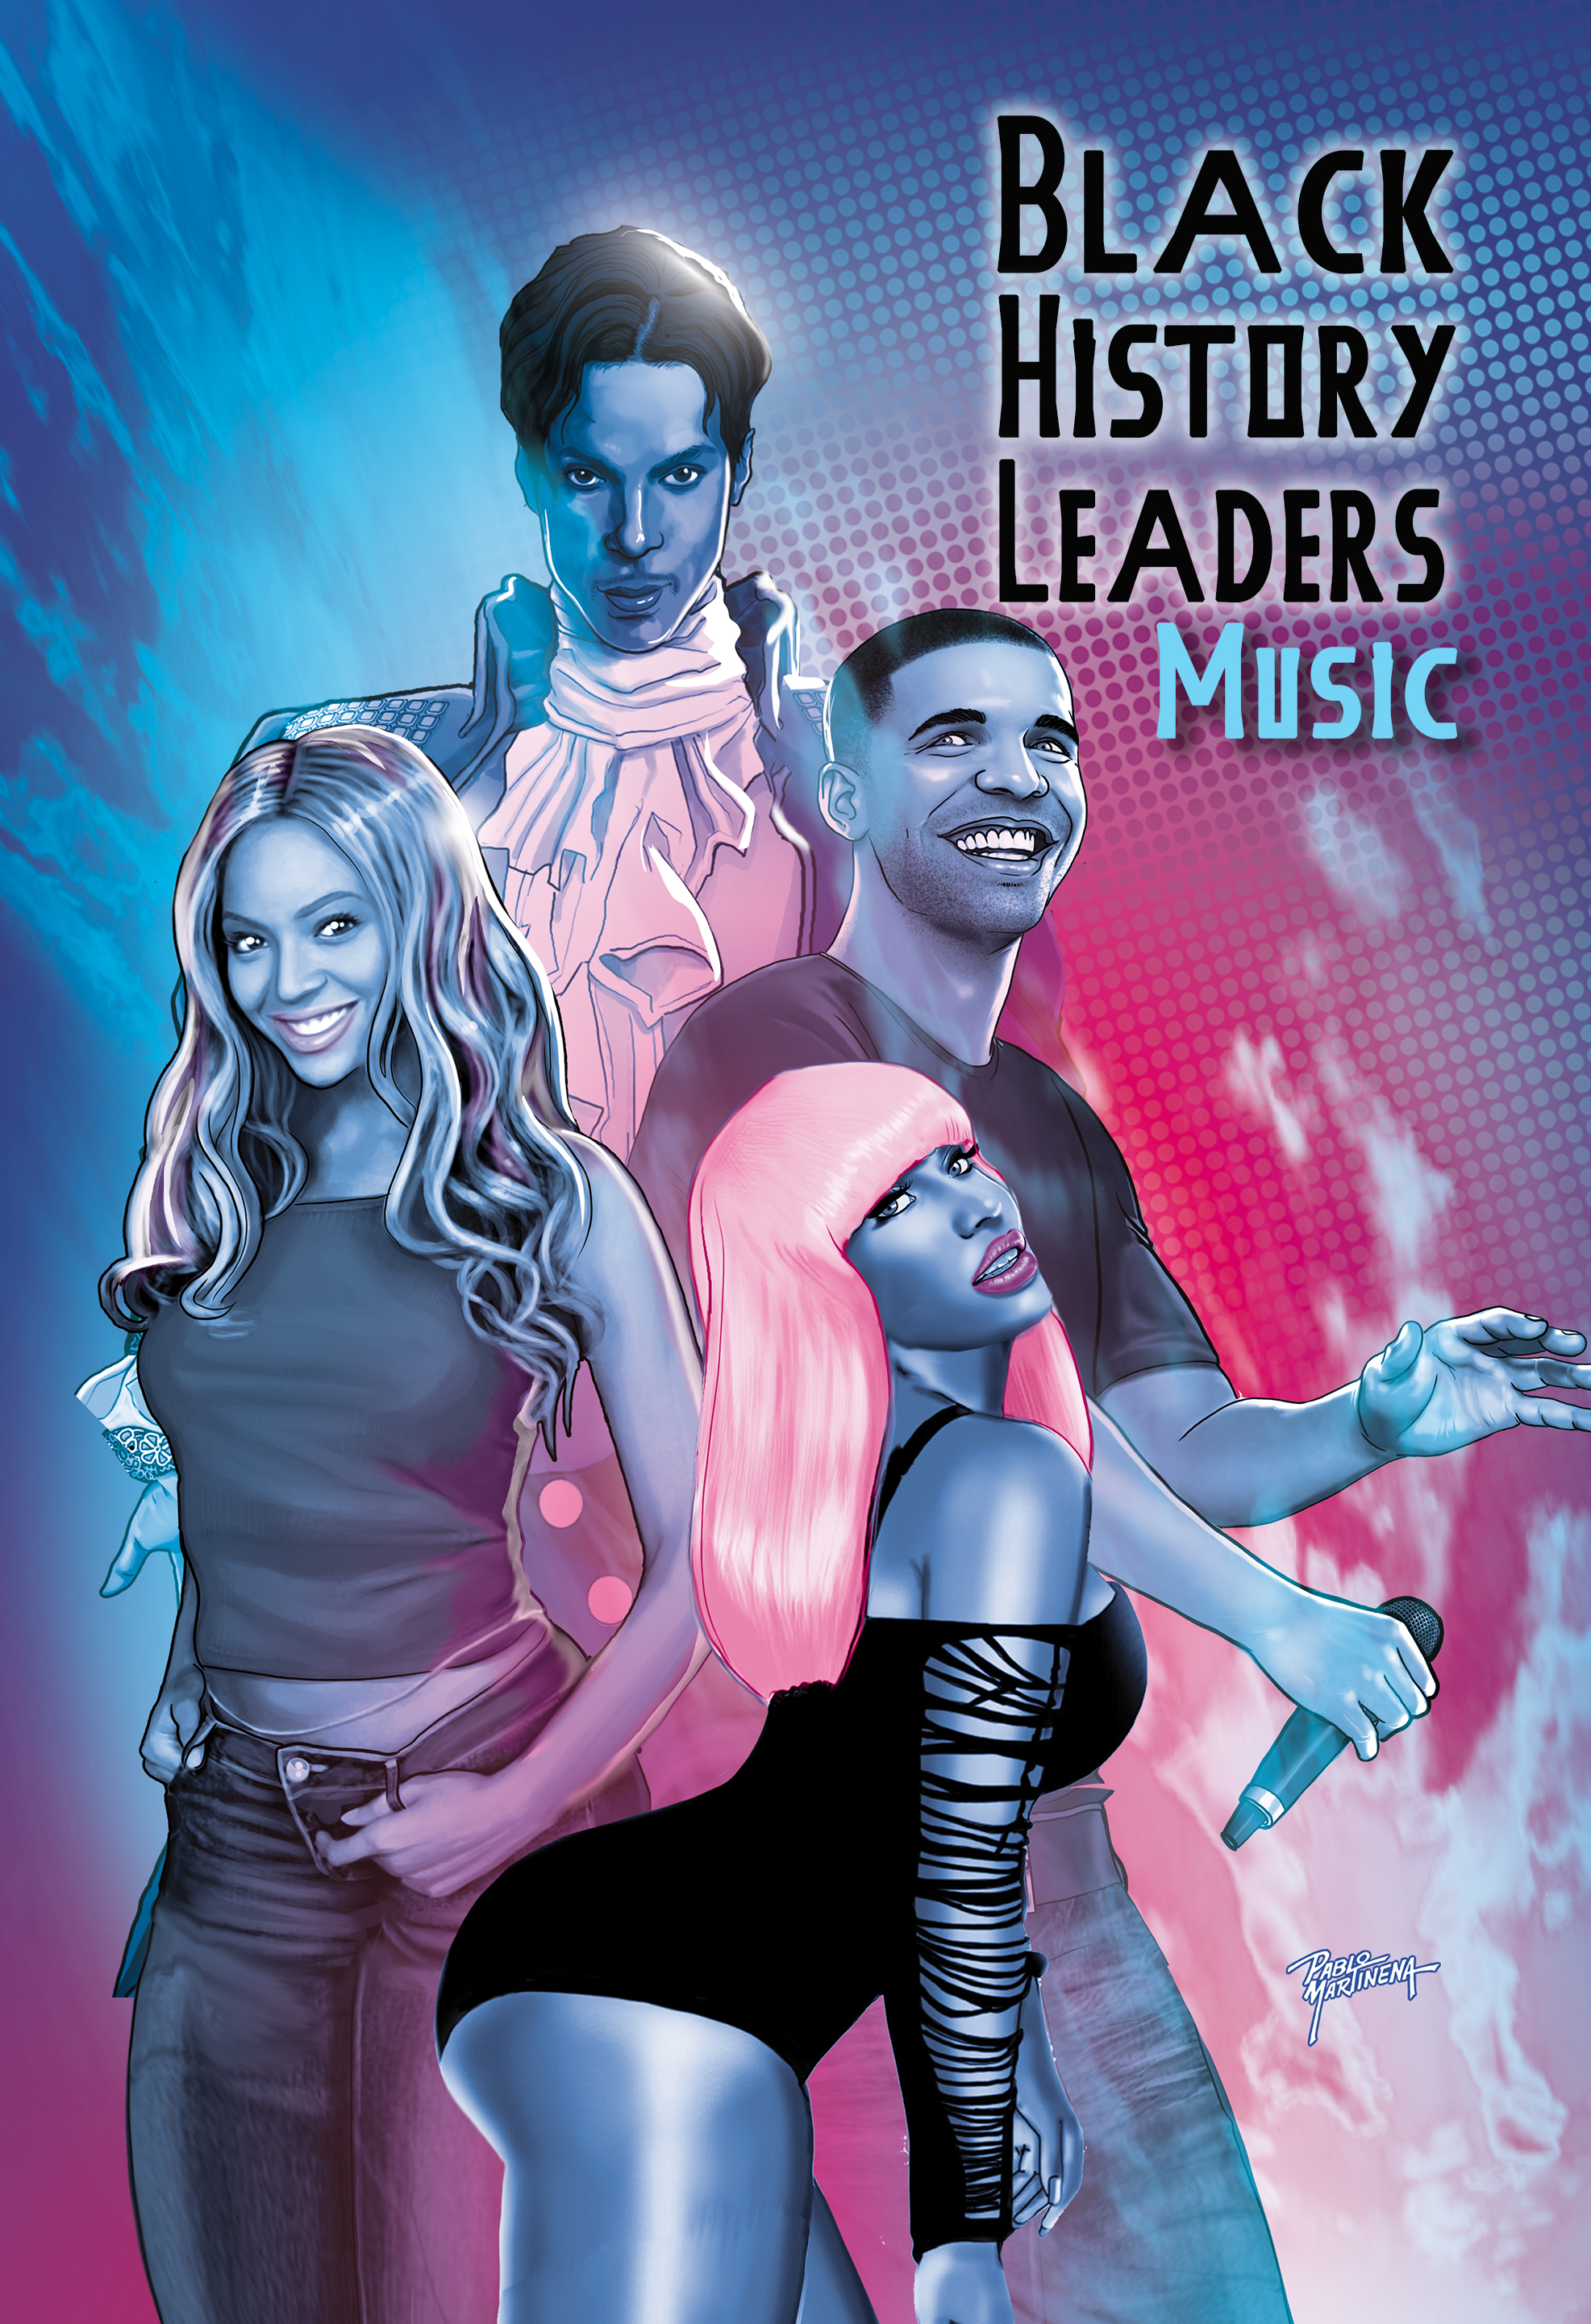 Black History Leaders: Music: Beyonce, Drake, Nikki Minaj and Prince